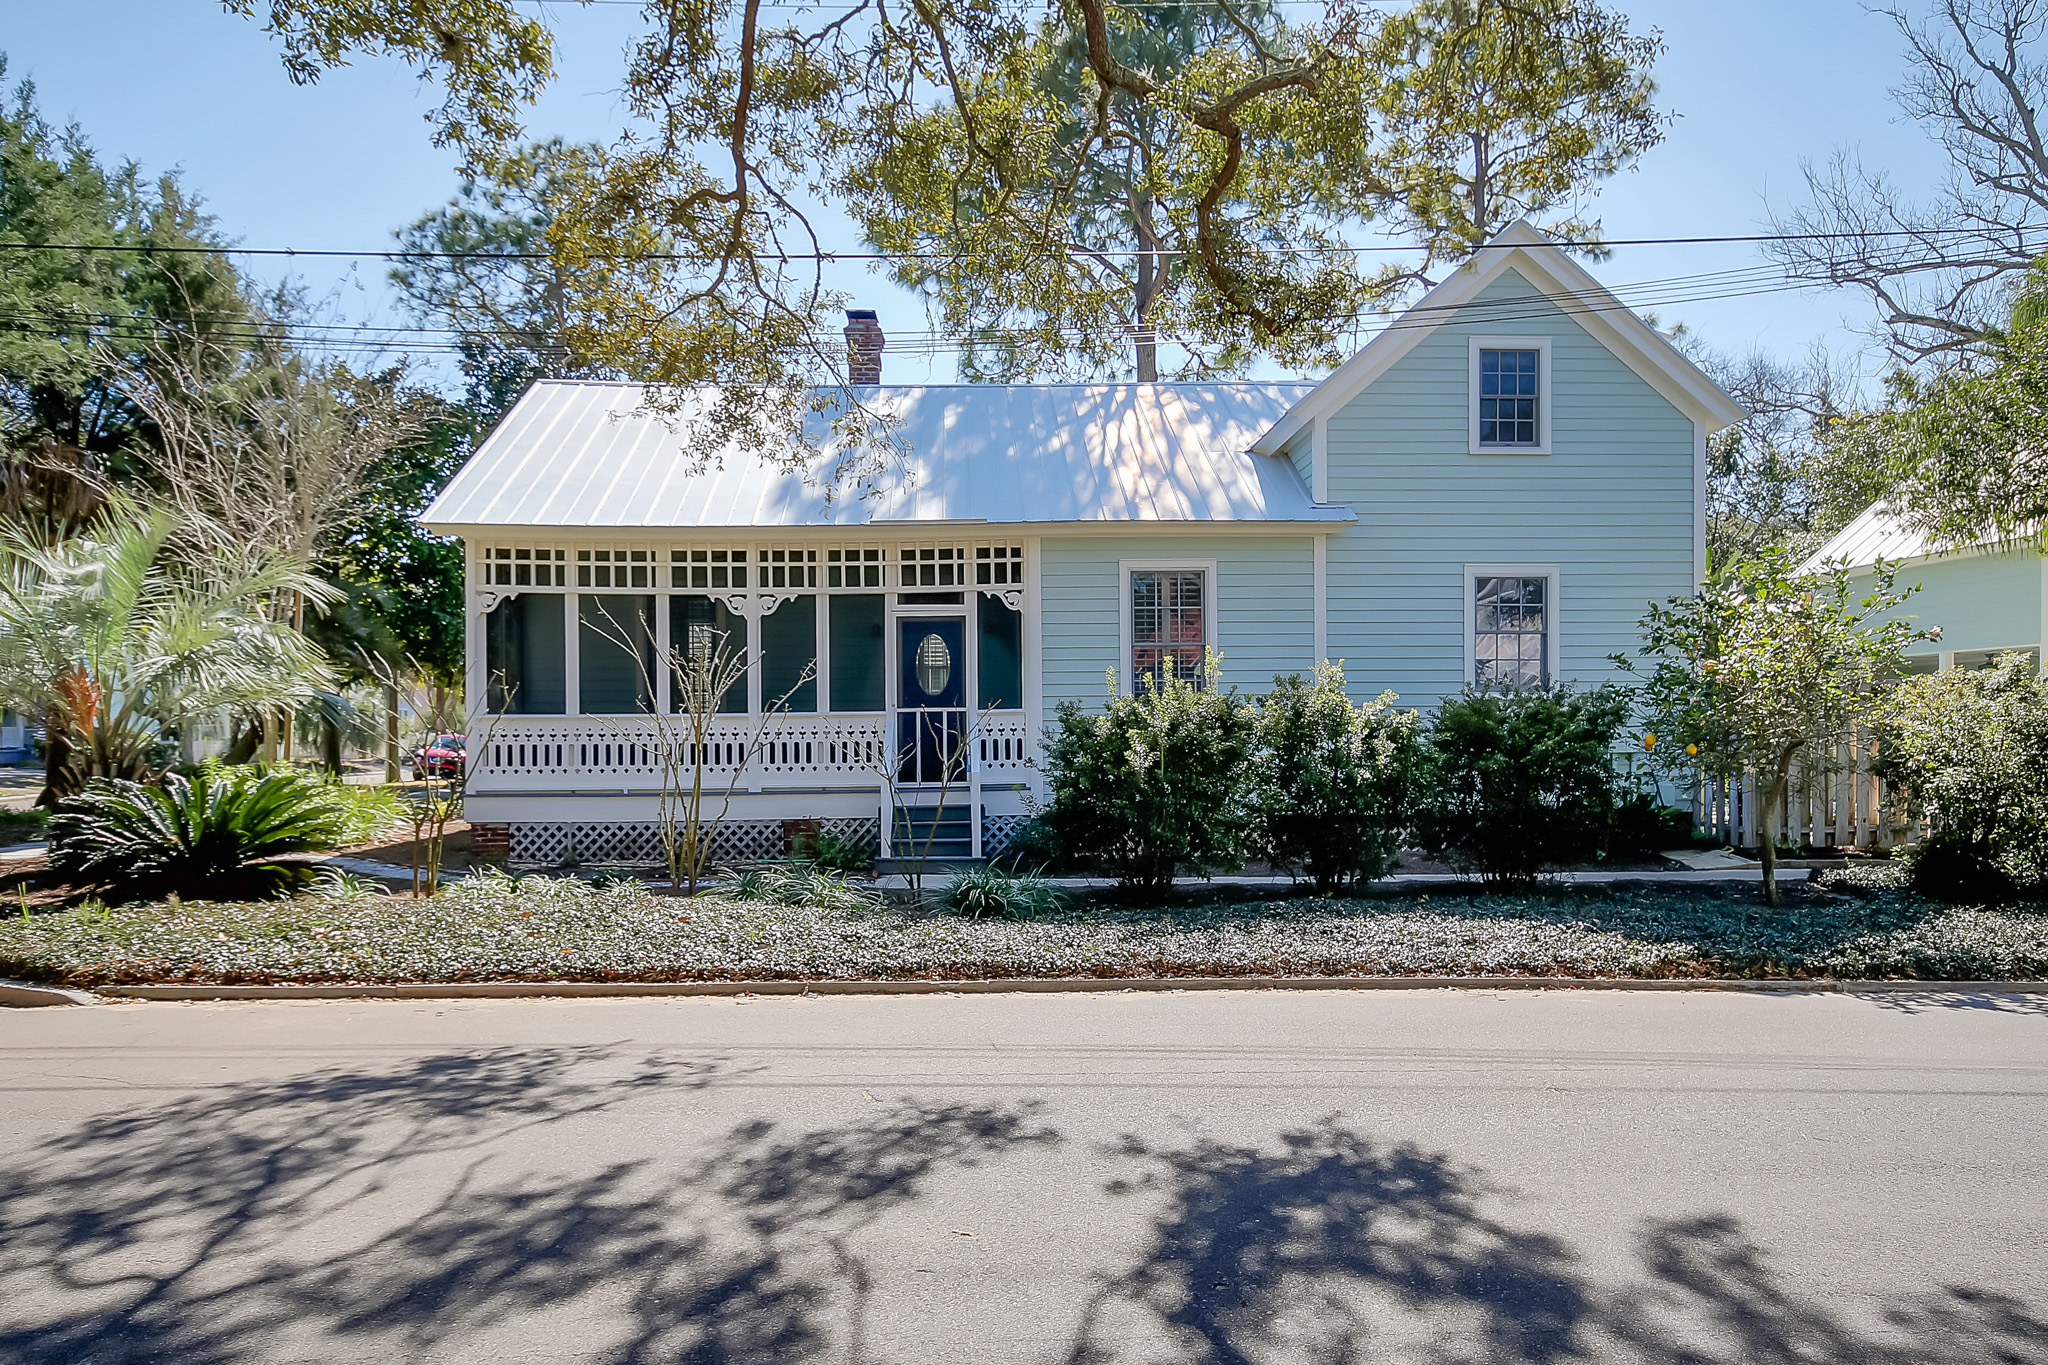 Single Family Home for Sale at Beautiful Historic Home in Downtown Fernandina Beach 301 South 6th Street Fernandina Beach, Florida, 32034 United States